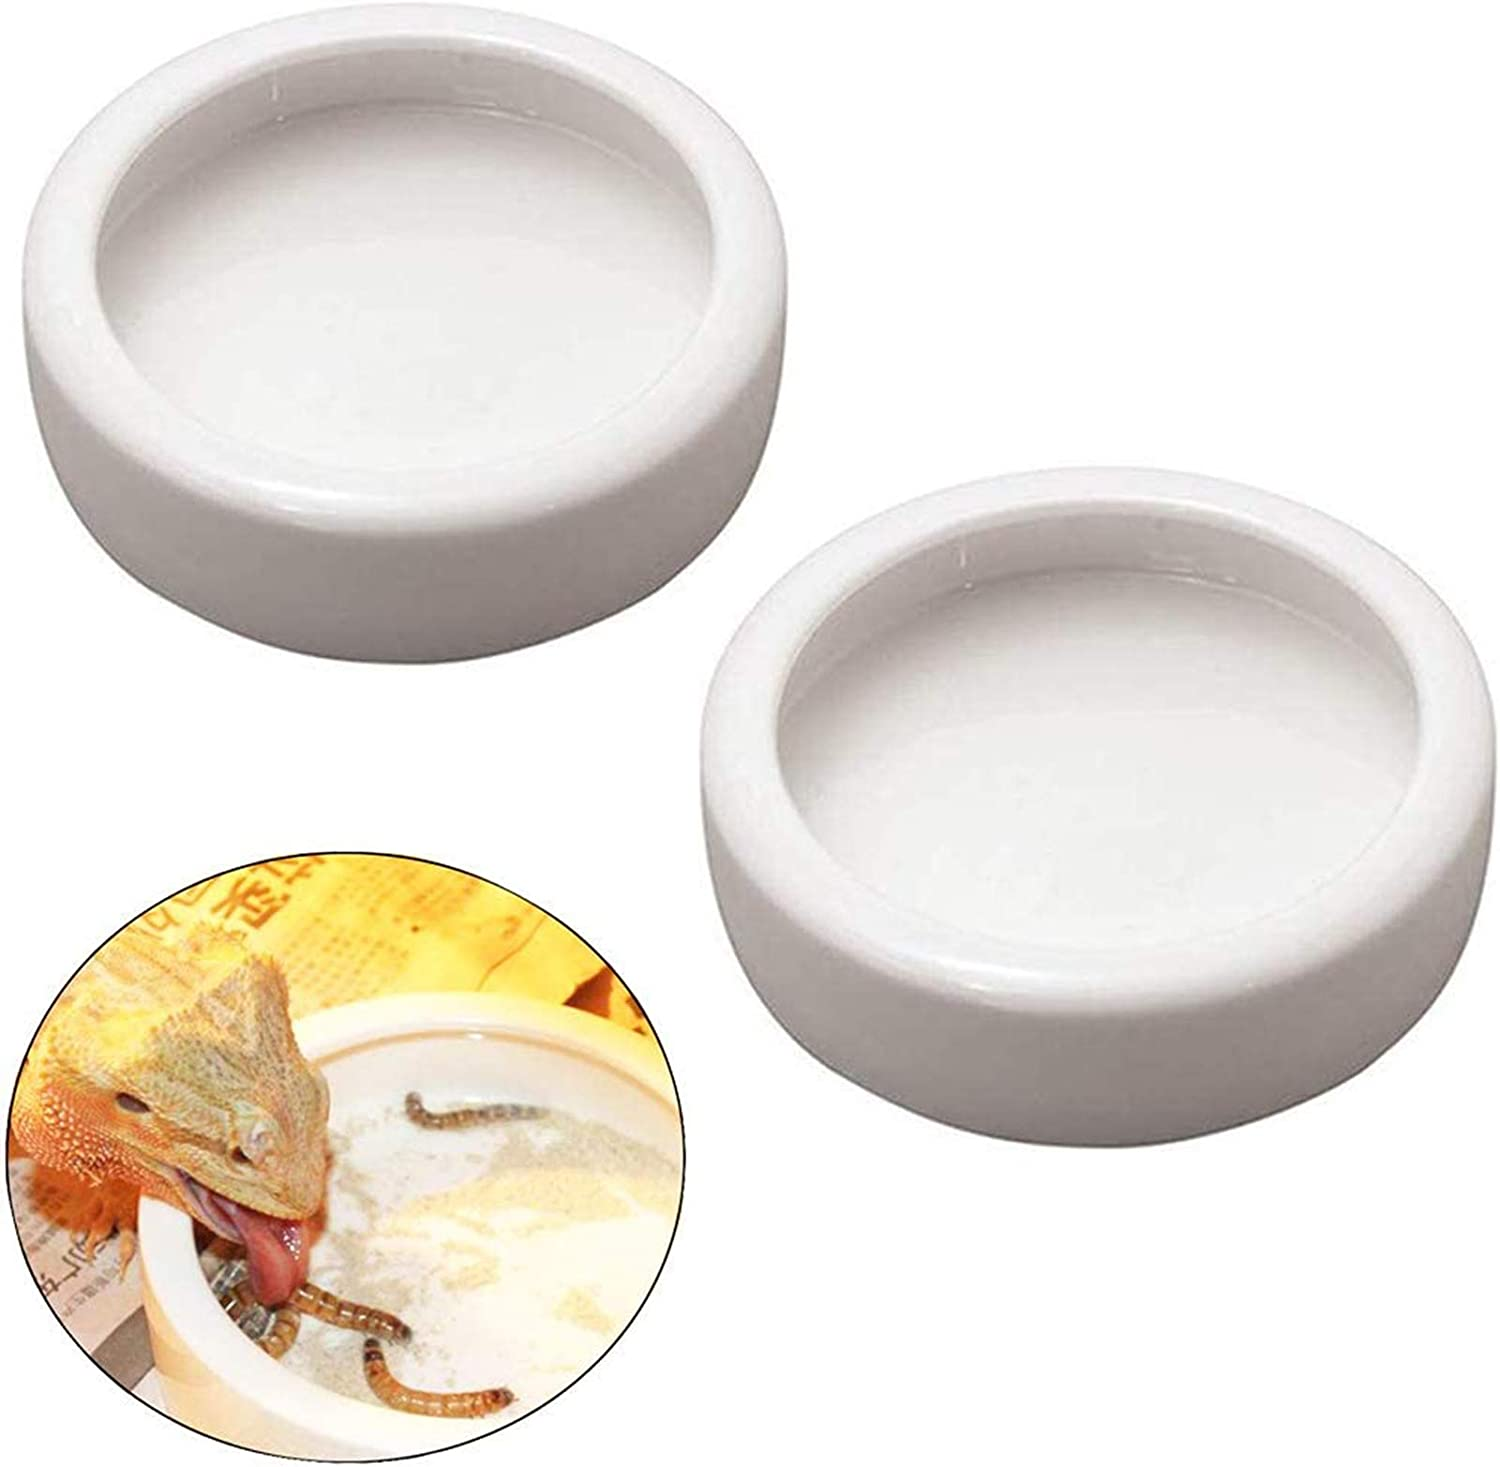 Orgrimmar 2 Pack Reptile Food Bowl Lizard Gecko Food Water Dish Bearded Dragon Feeding Dish, Ceramics Worm Dish for Lizard Anoles Bearded Dragons